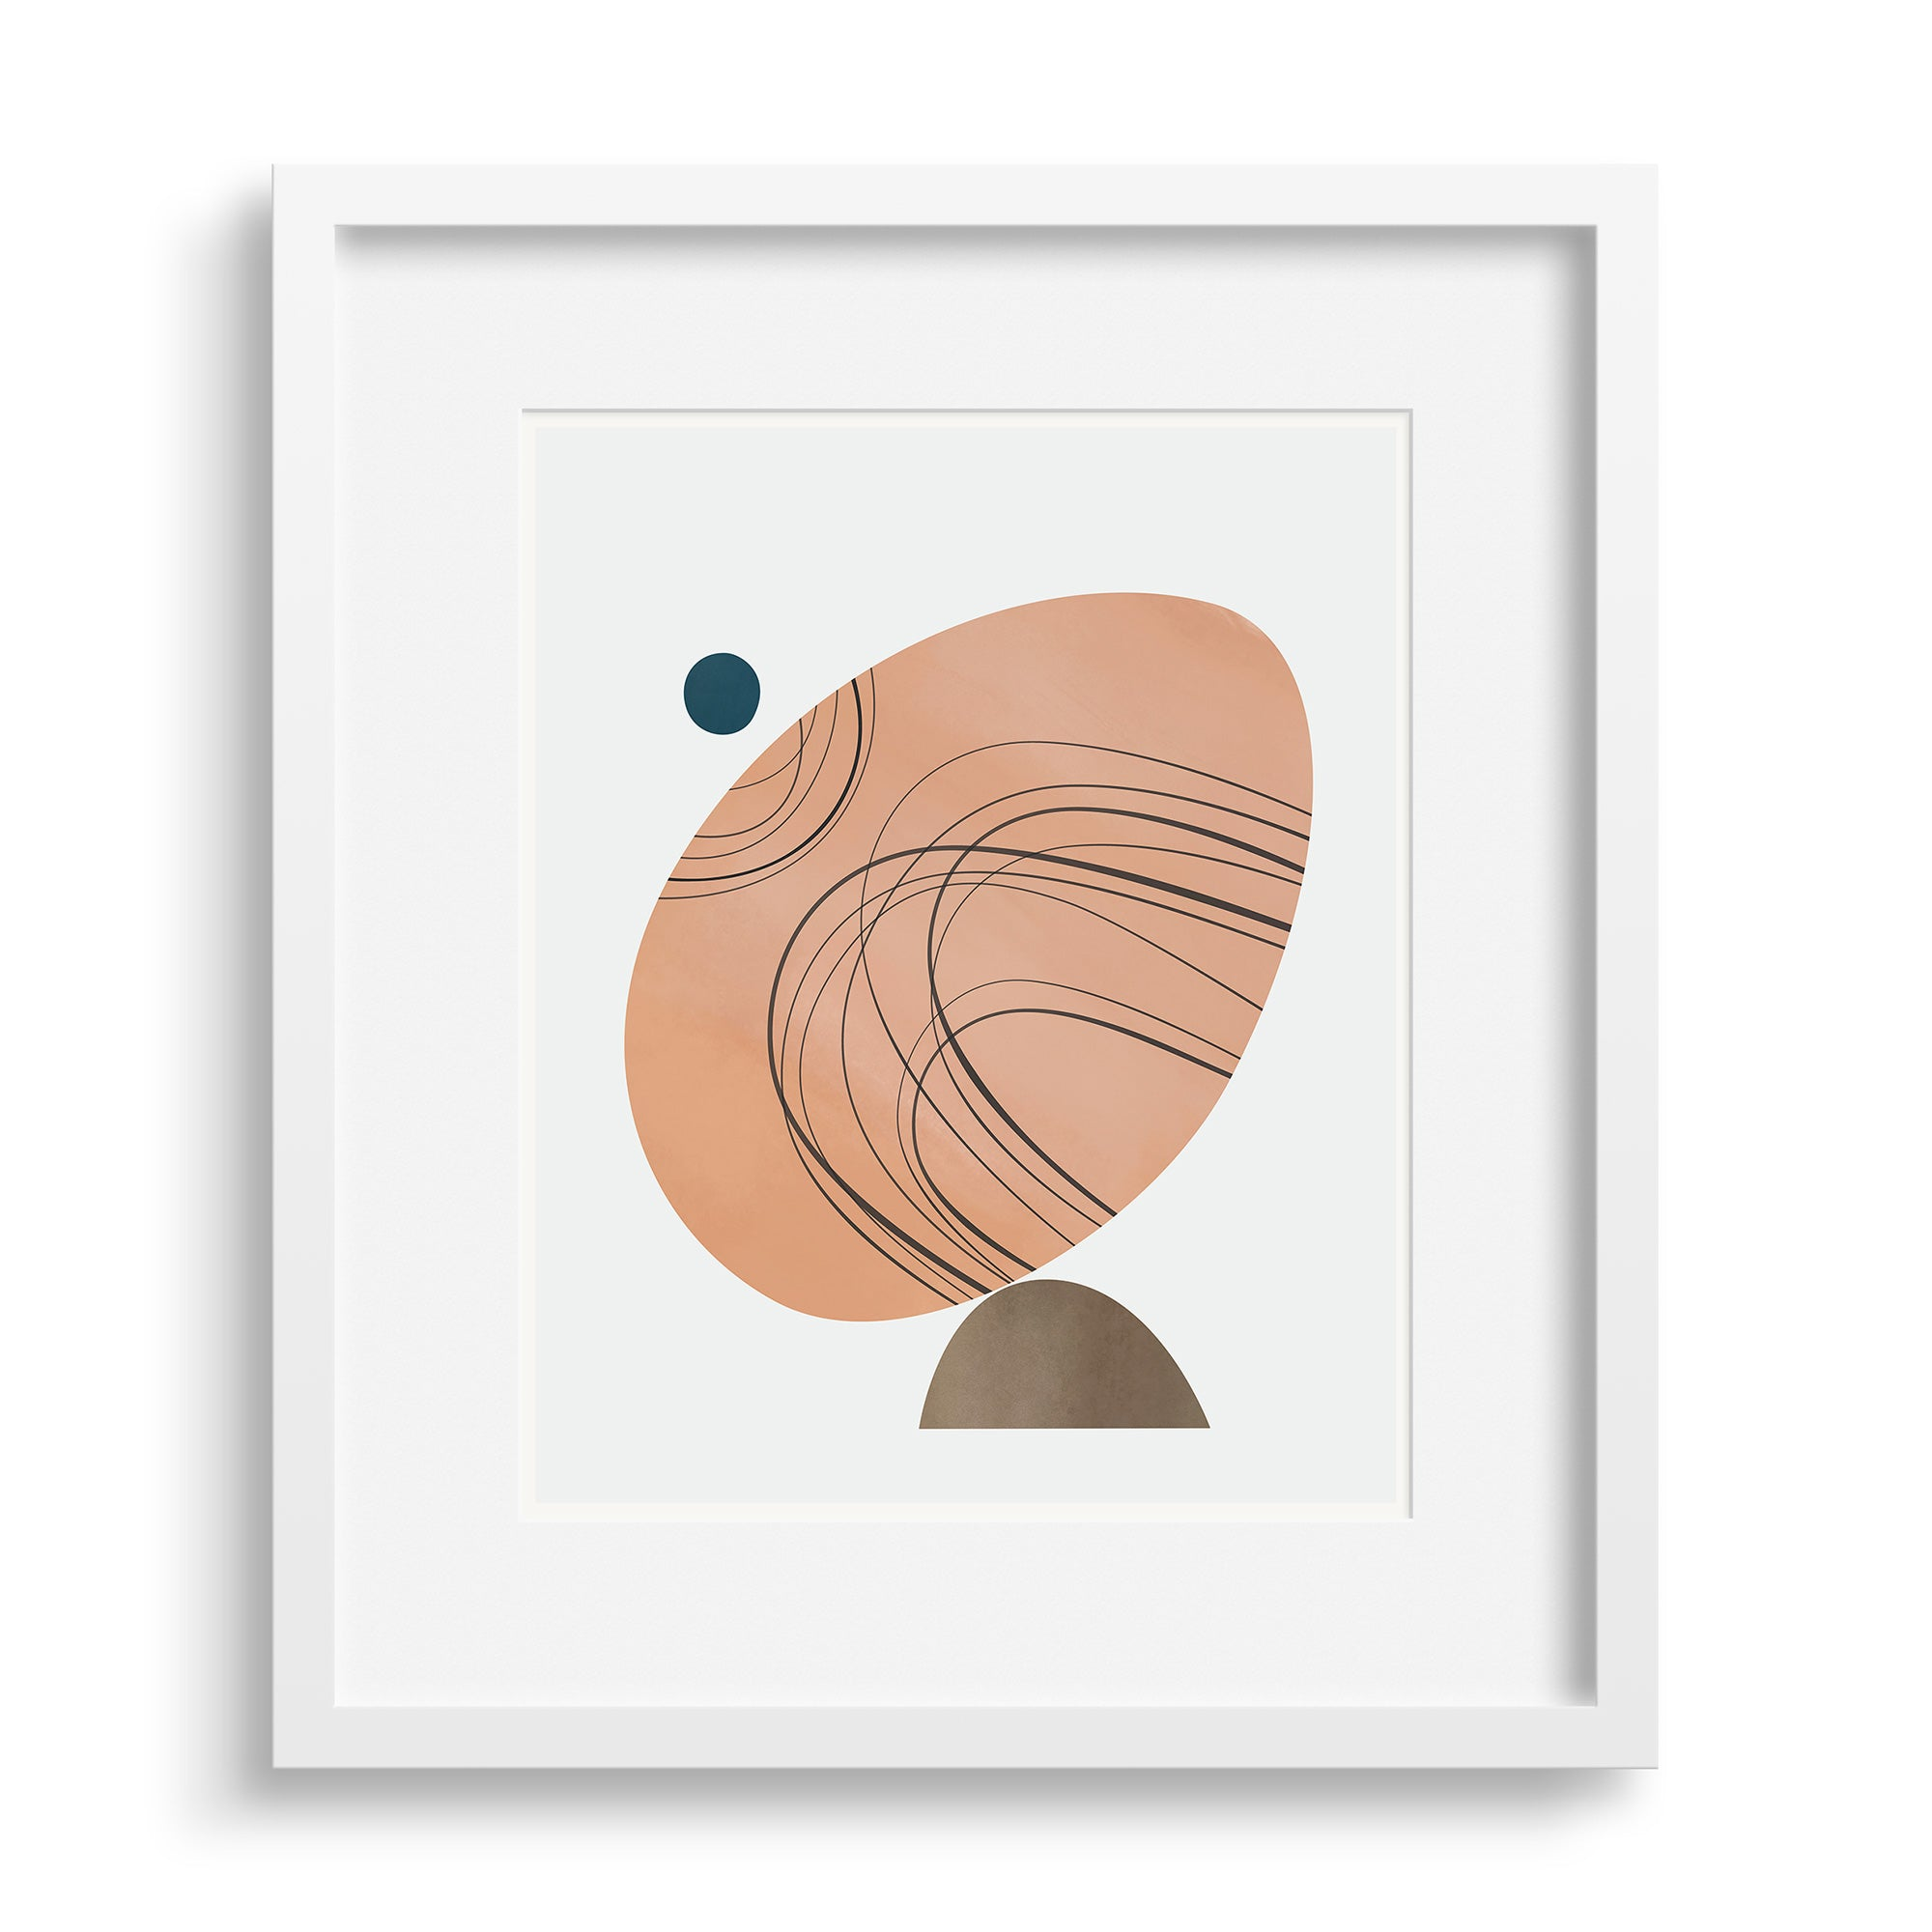 Tipping Point print by Janet Taylor in a white frame.